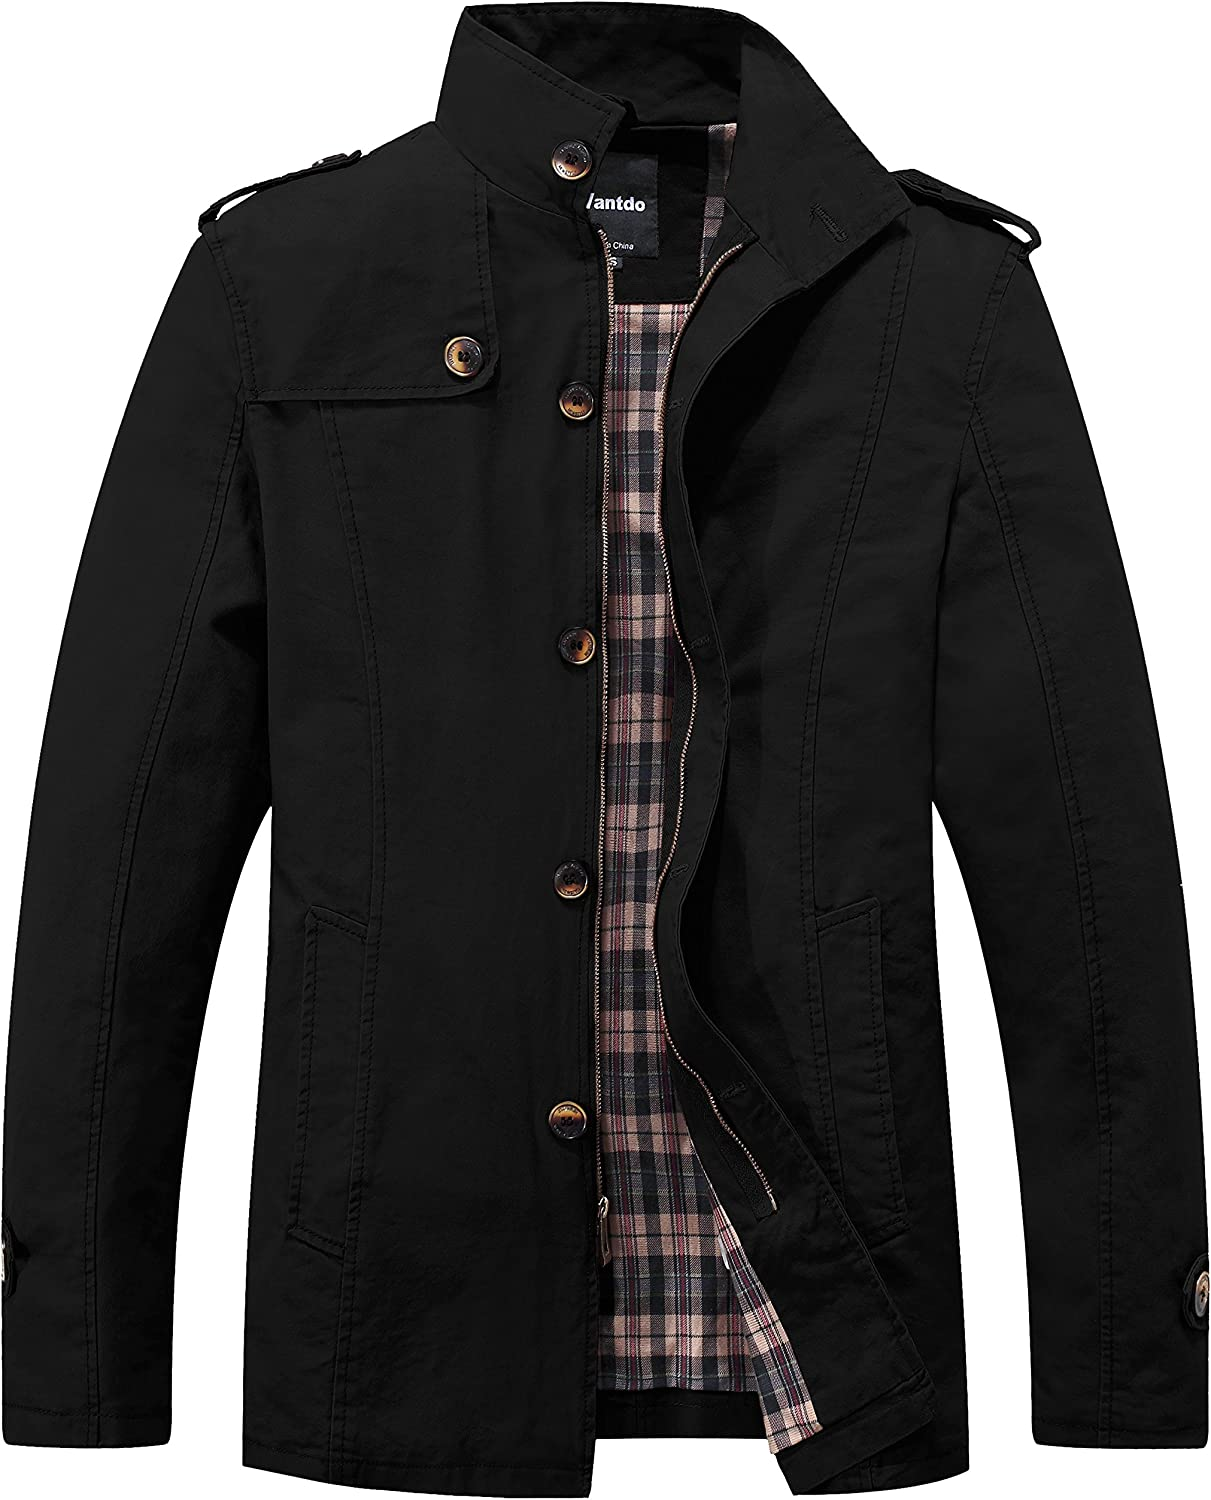 Wantdo Men's Cotton Classic Military Cheap Max 85% OFF SALE Start Jacket Collar Durable Stand